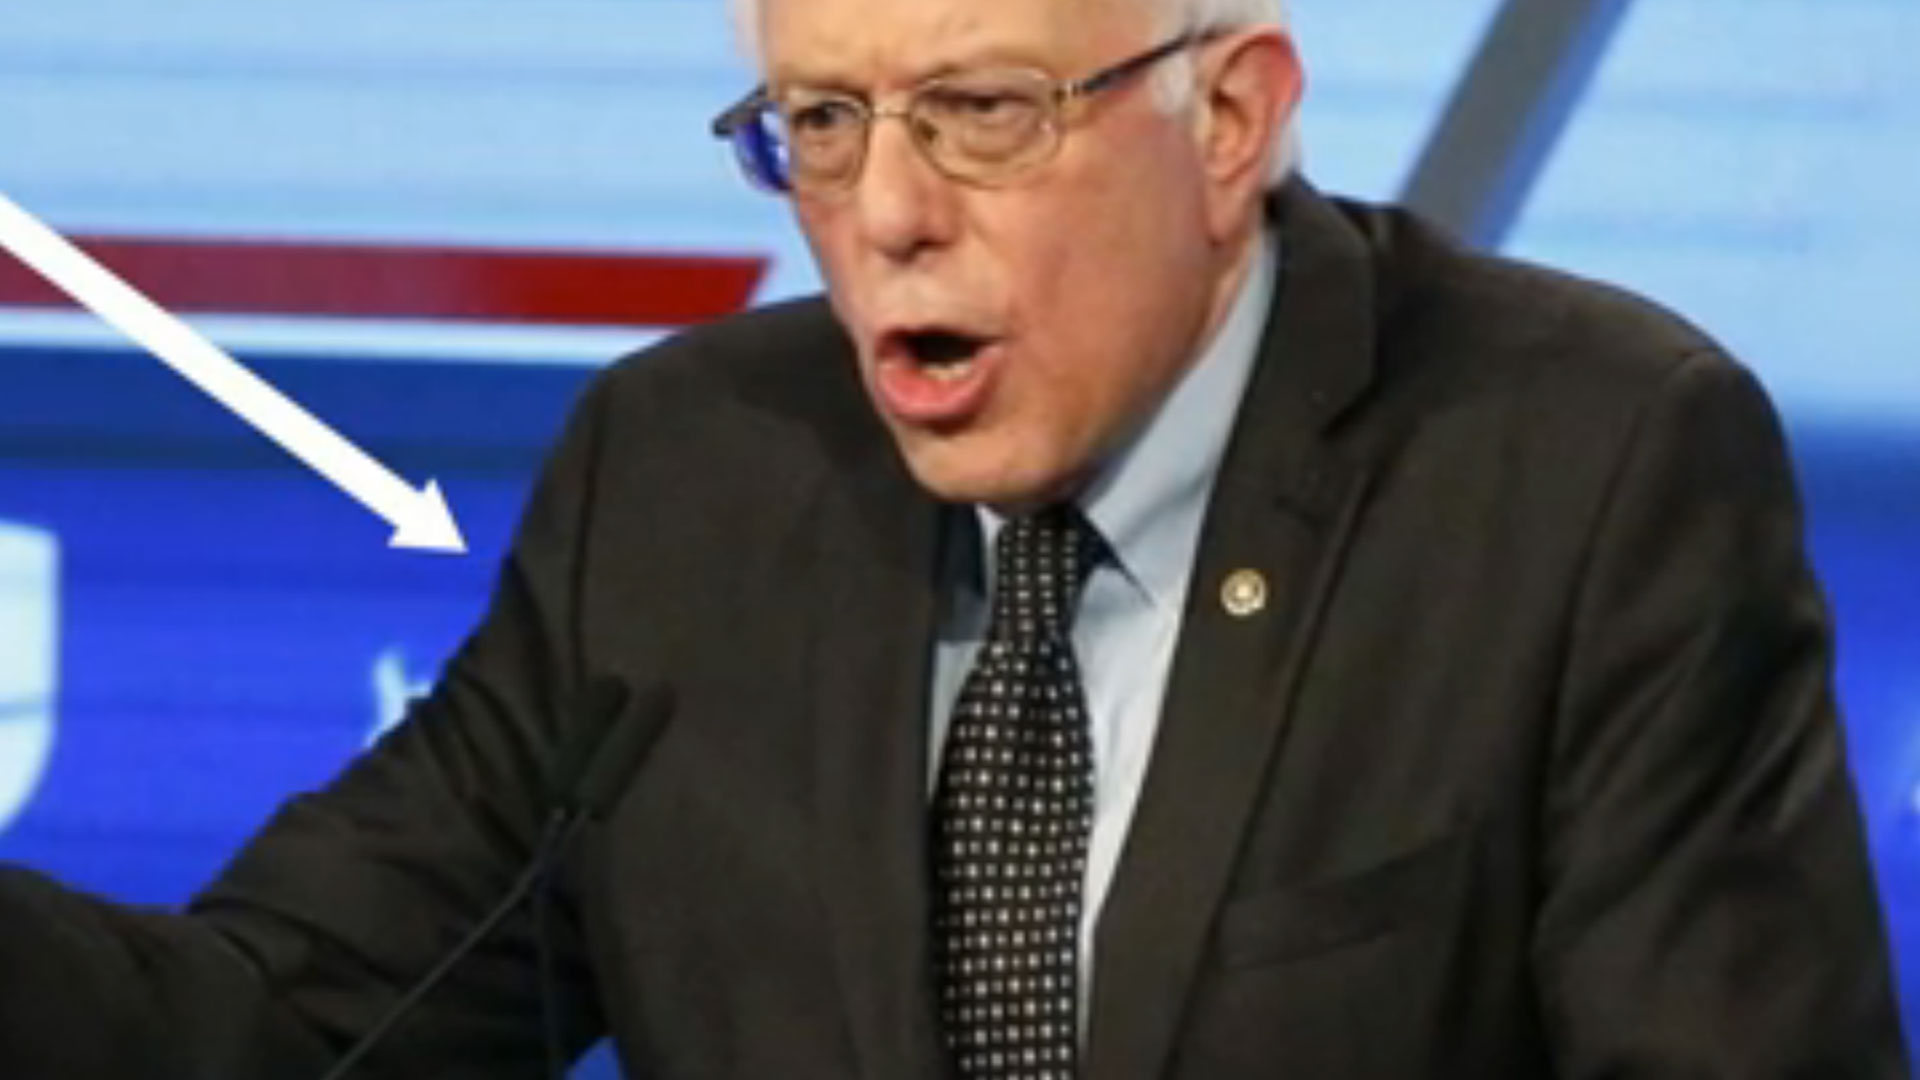 ksdk.com | Bernie Sanders' suit becomes 'The Dress' of 2016